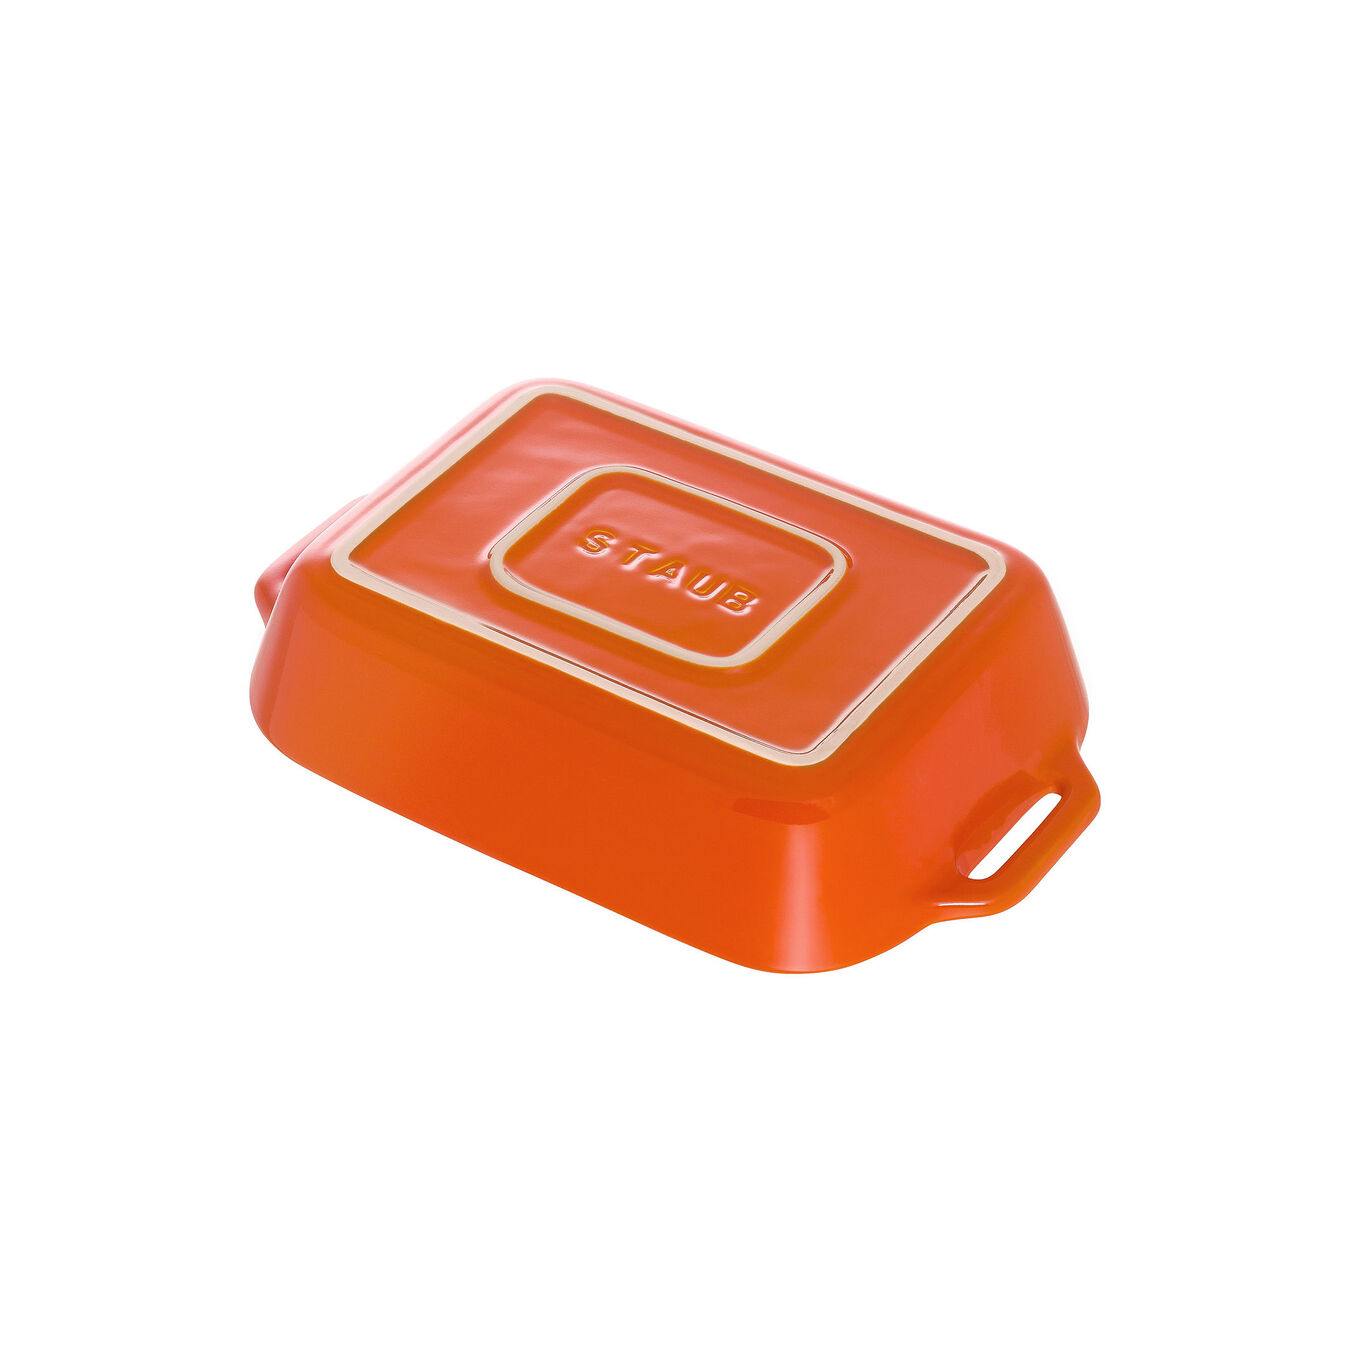 Ceramic rectangular Plat à four, Orange,,large 3